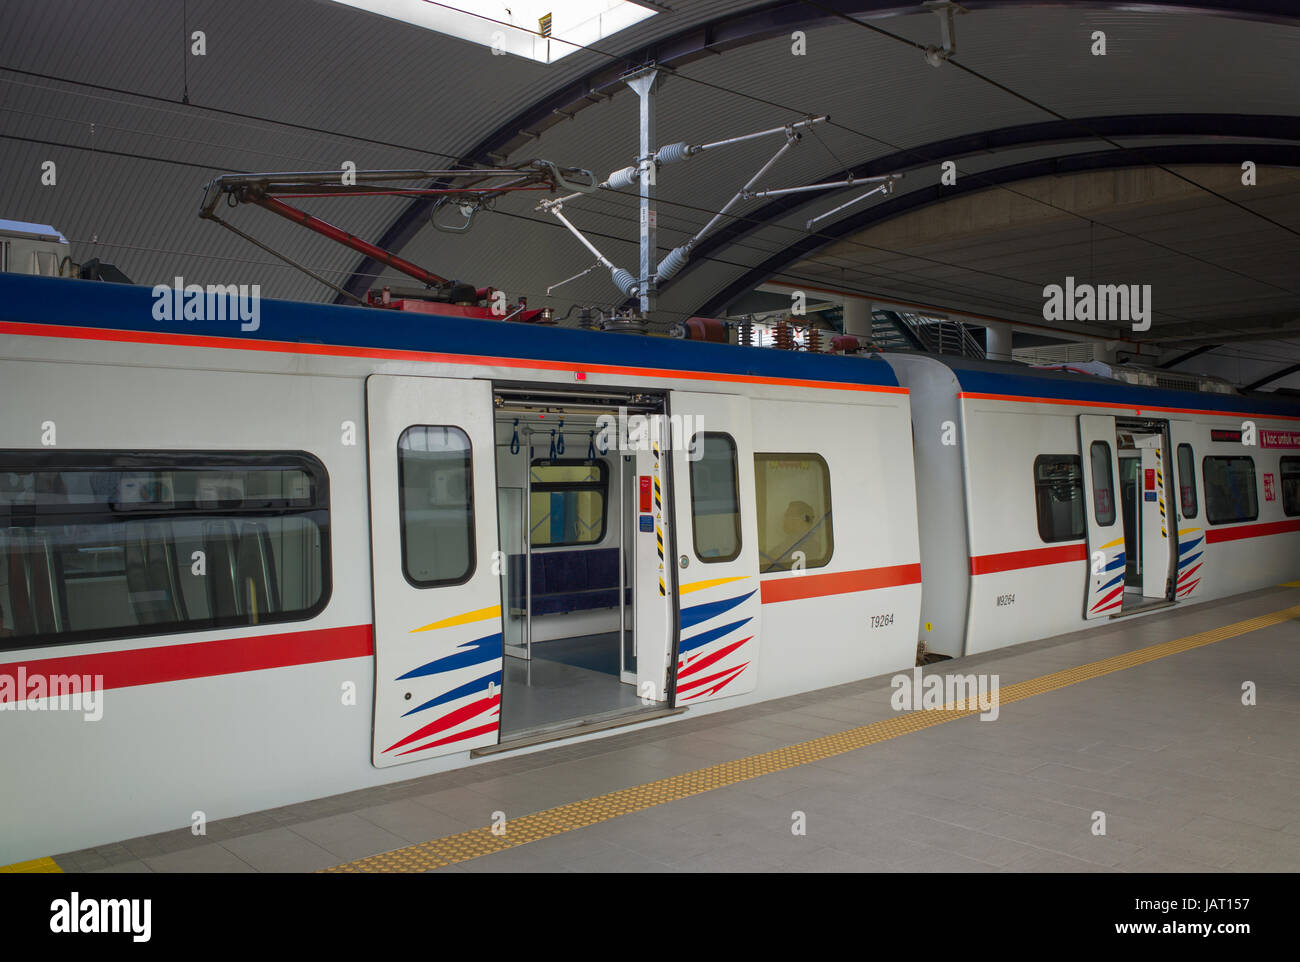 Pantograph coach in KTM Class 92 electric multiple unit train at Batu Caves station, Malaysia - Stock Image